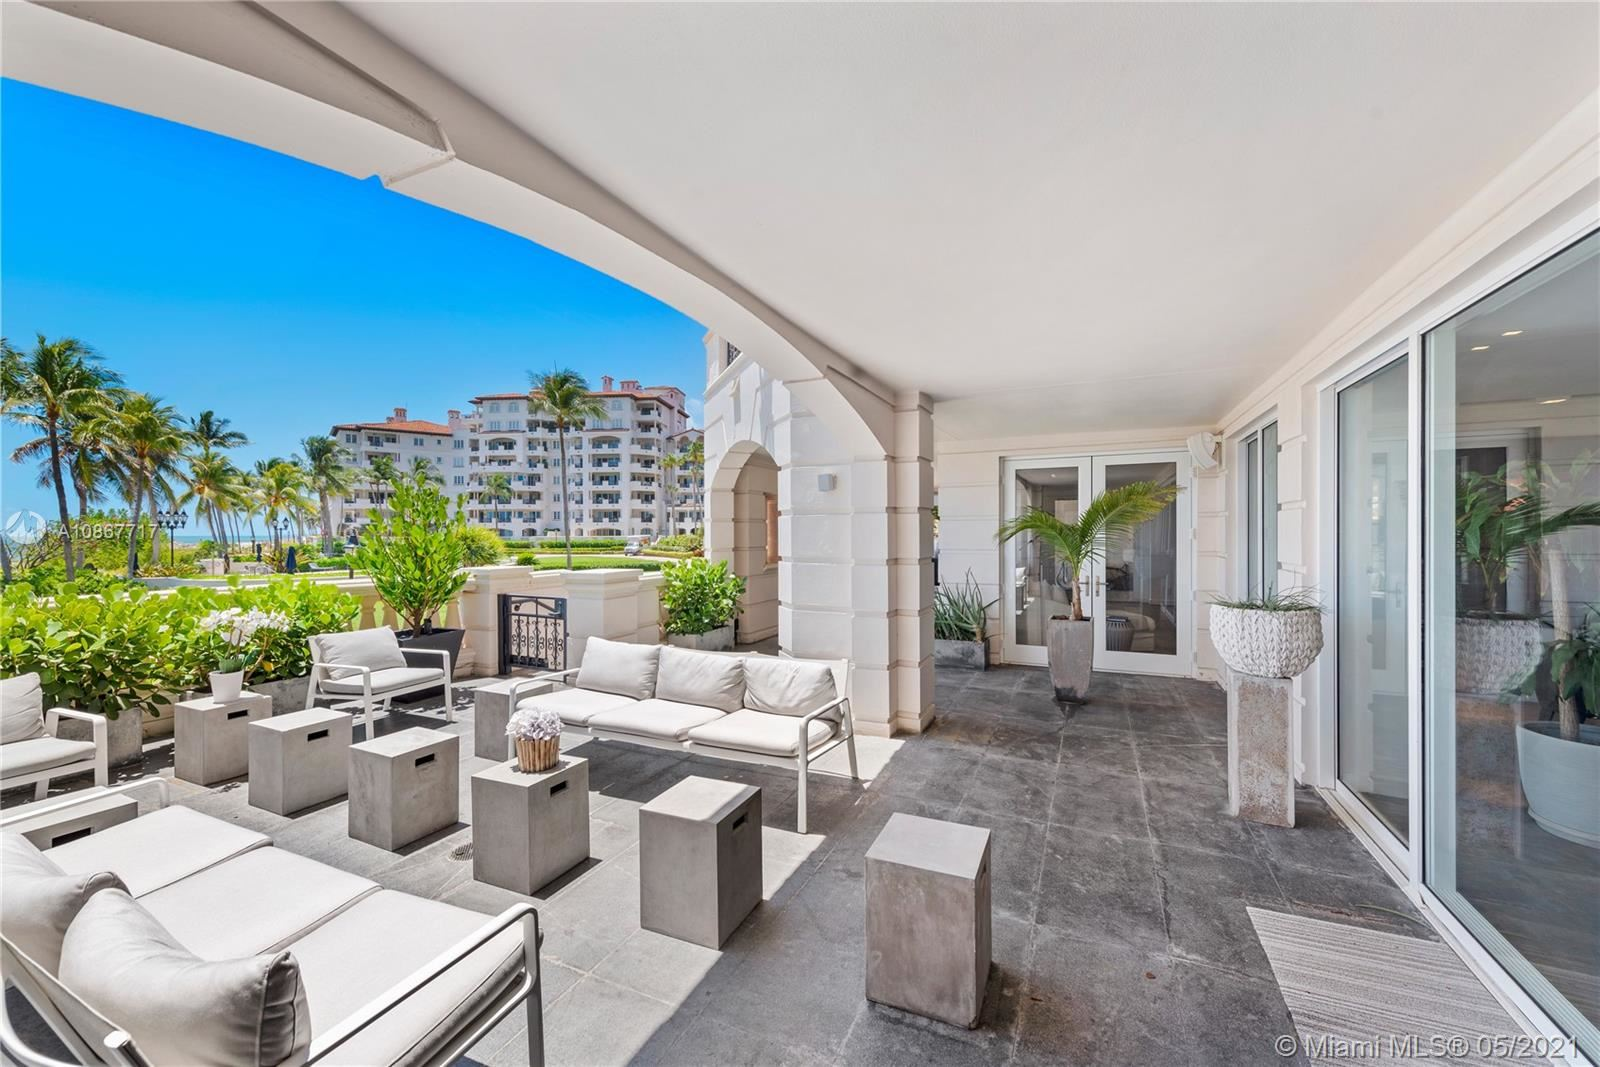 Photo 4 of Listing MLS a10867717 in 7716 FISHER ISLAND DR #7716 Miami FL 33109